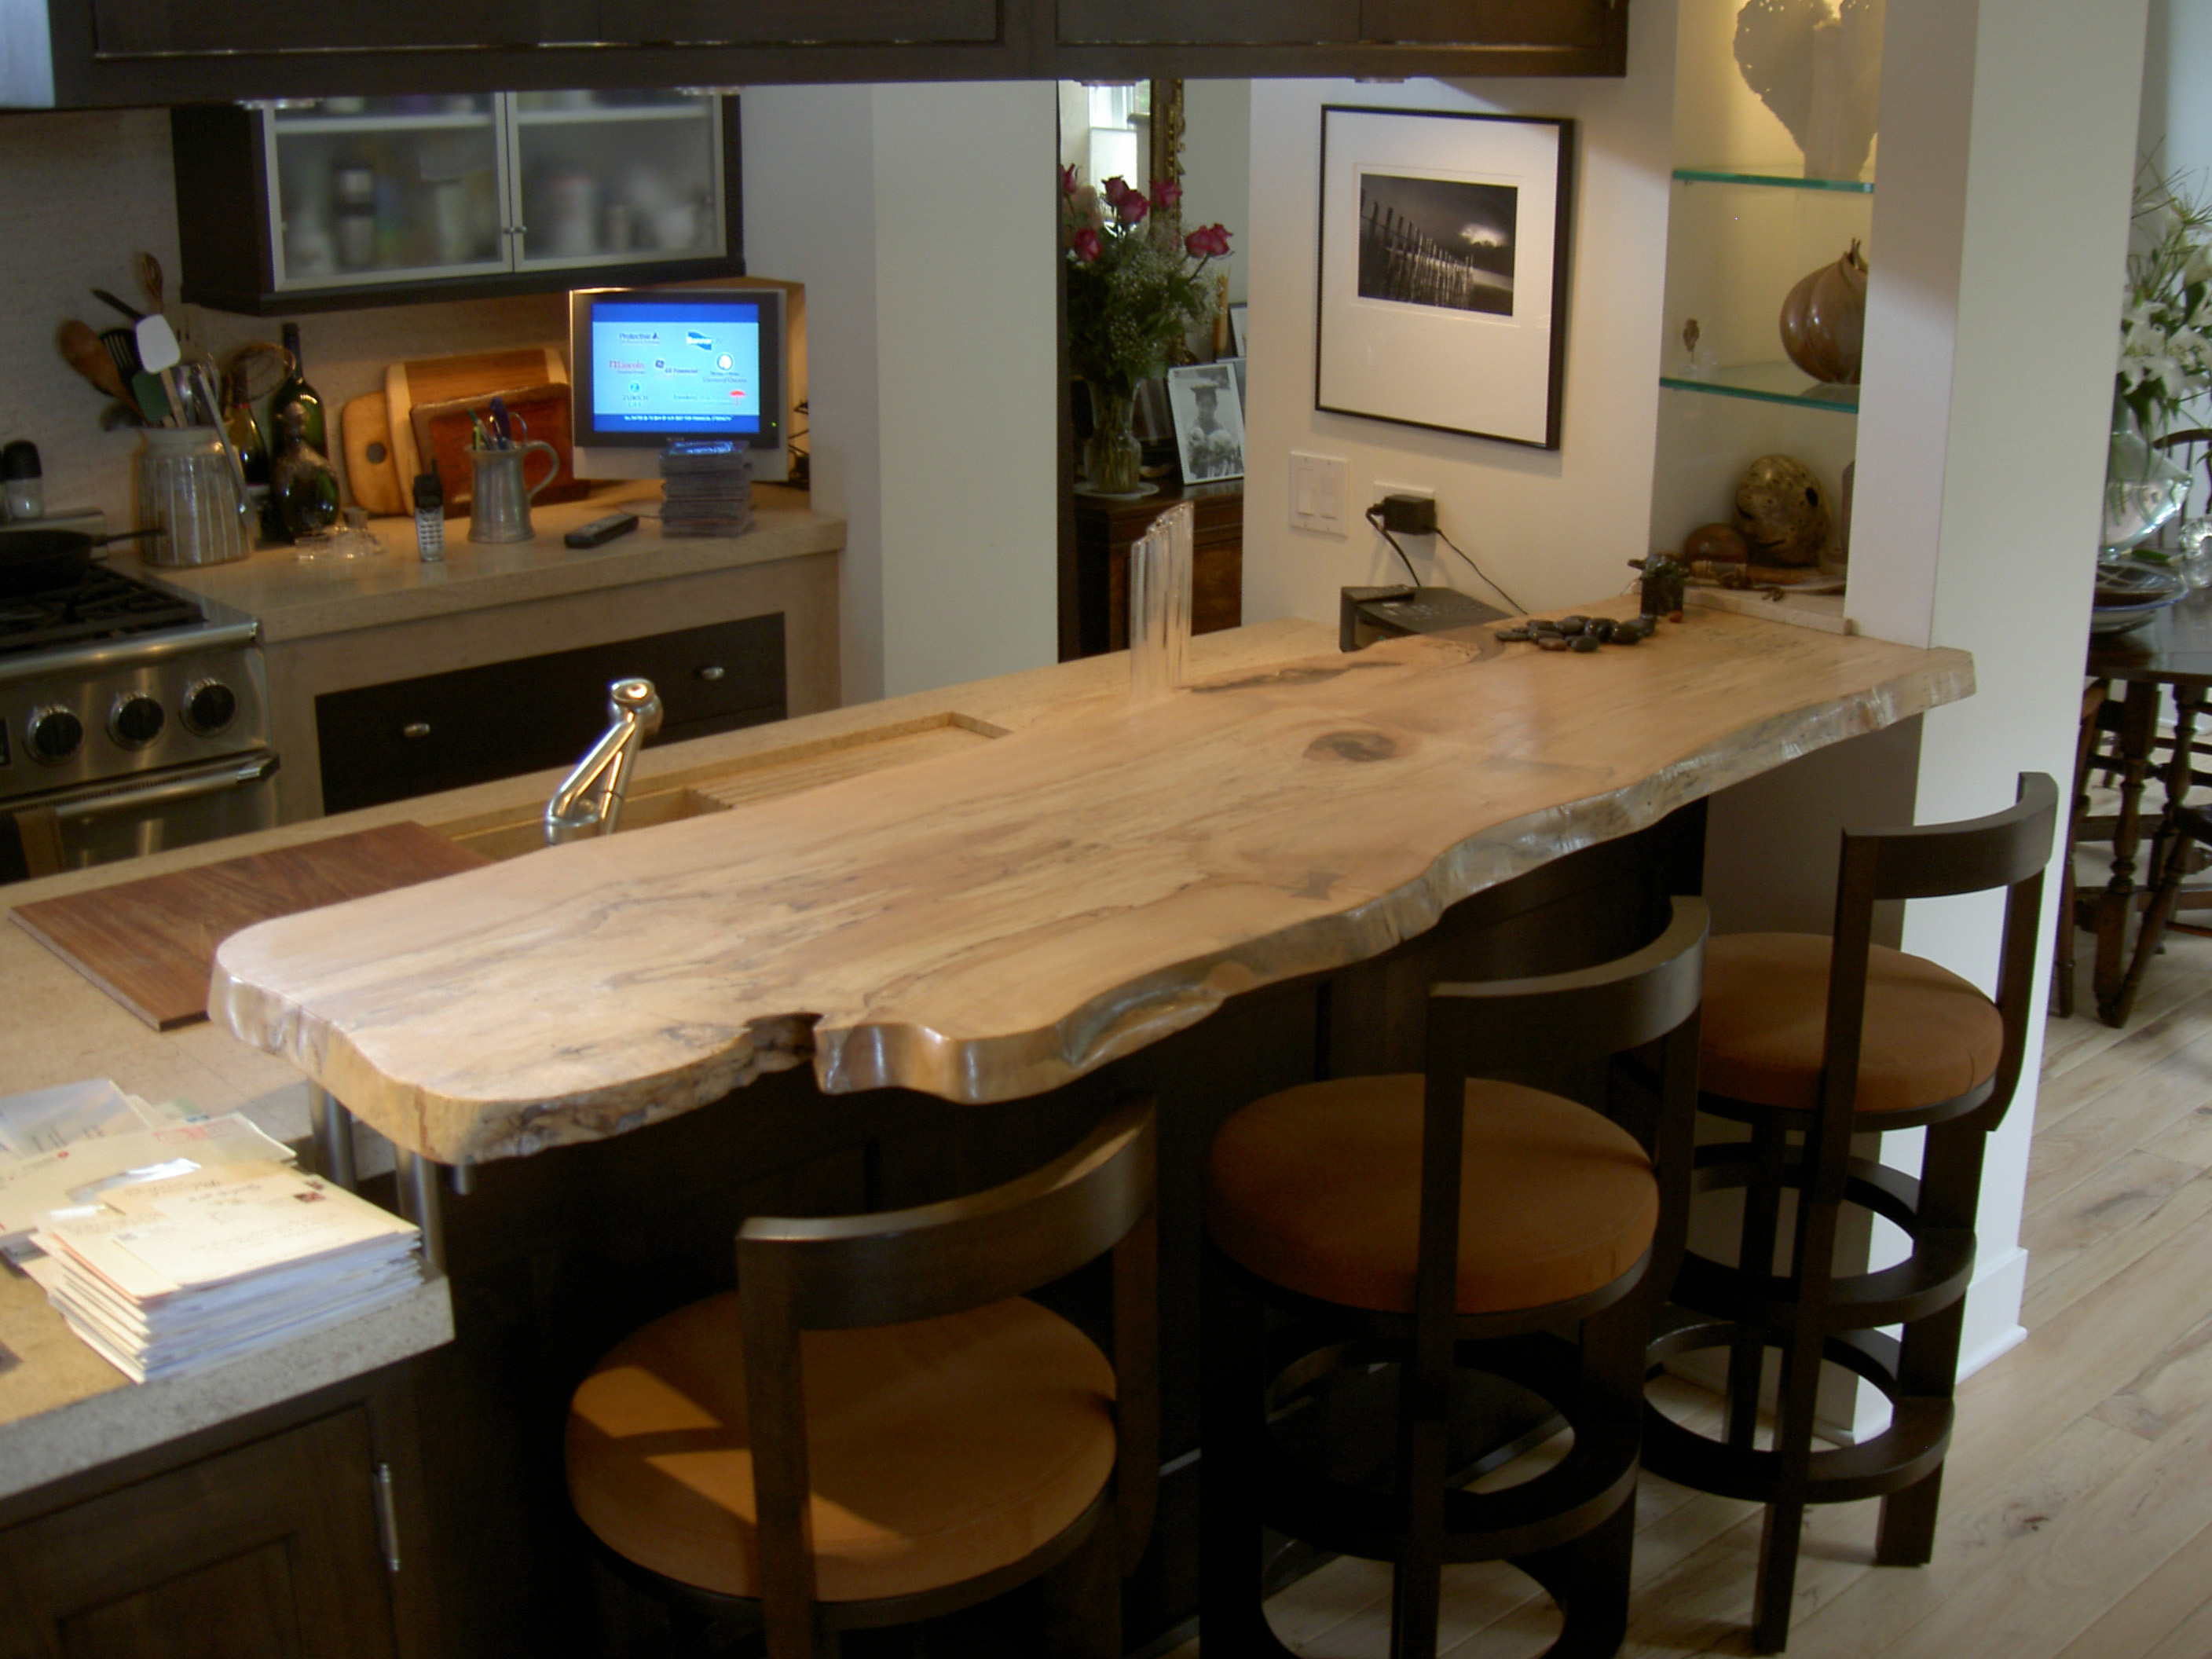 Merveilleux Spalted Maple Slab Countertop